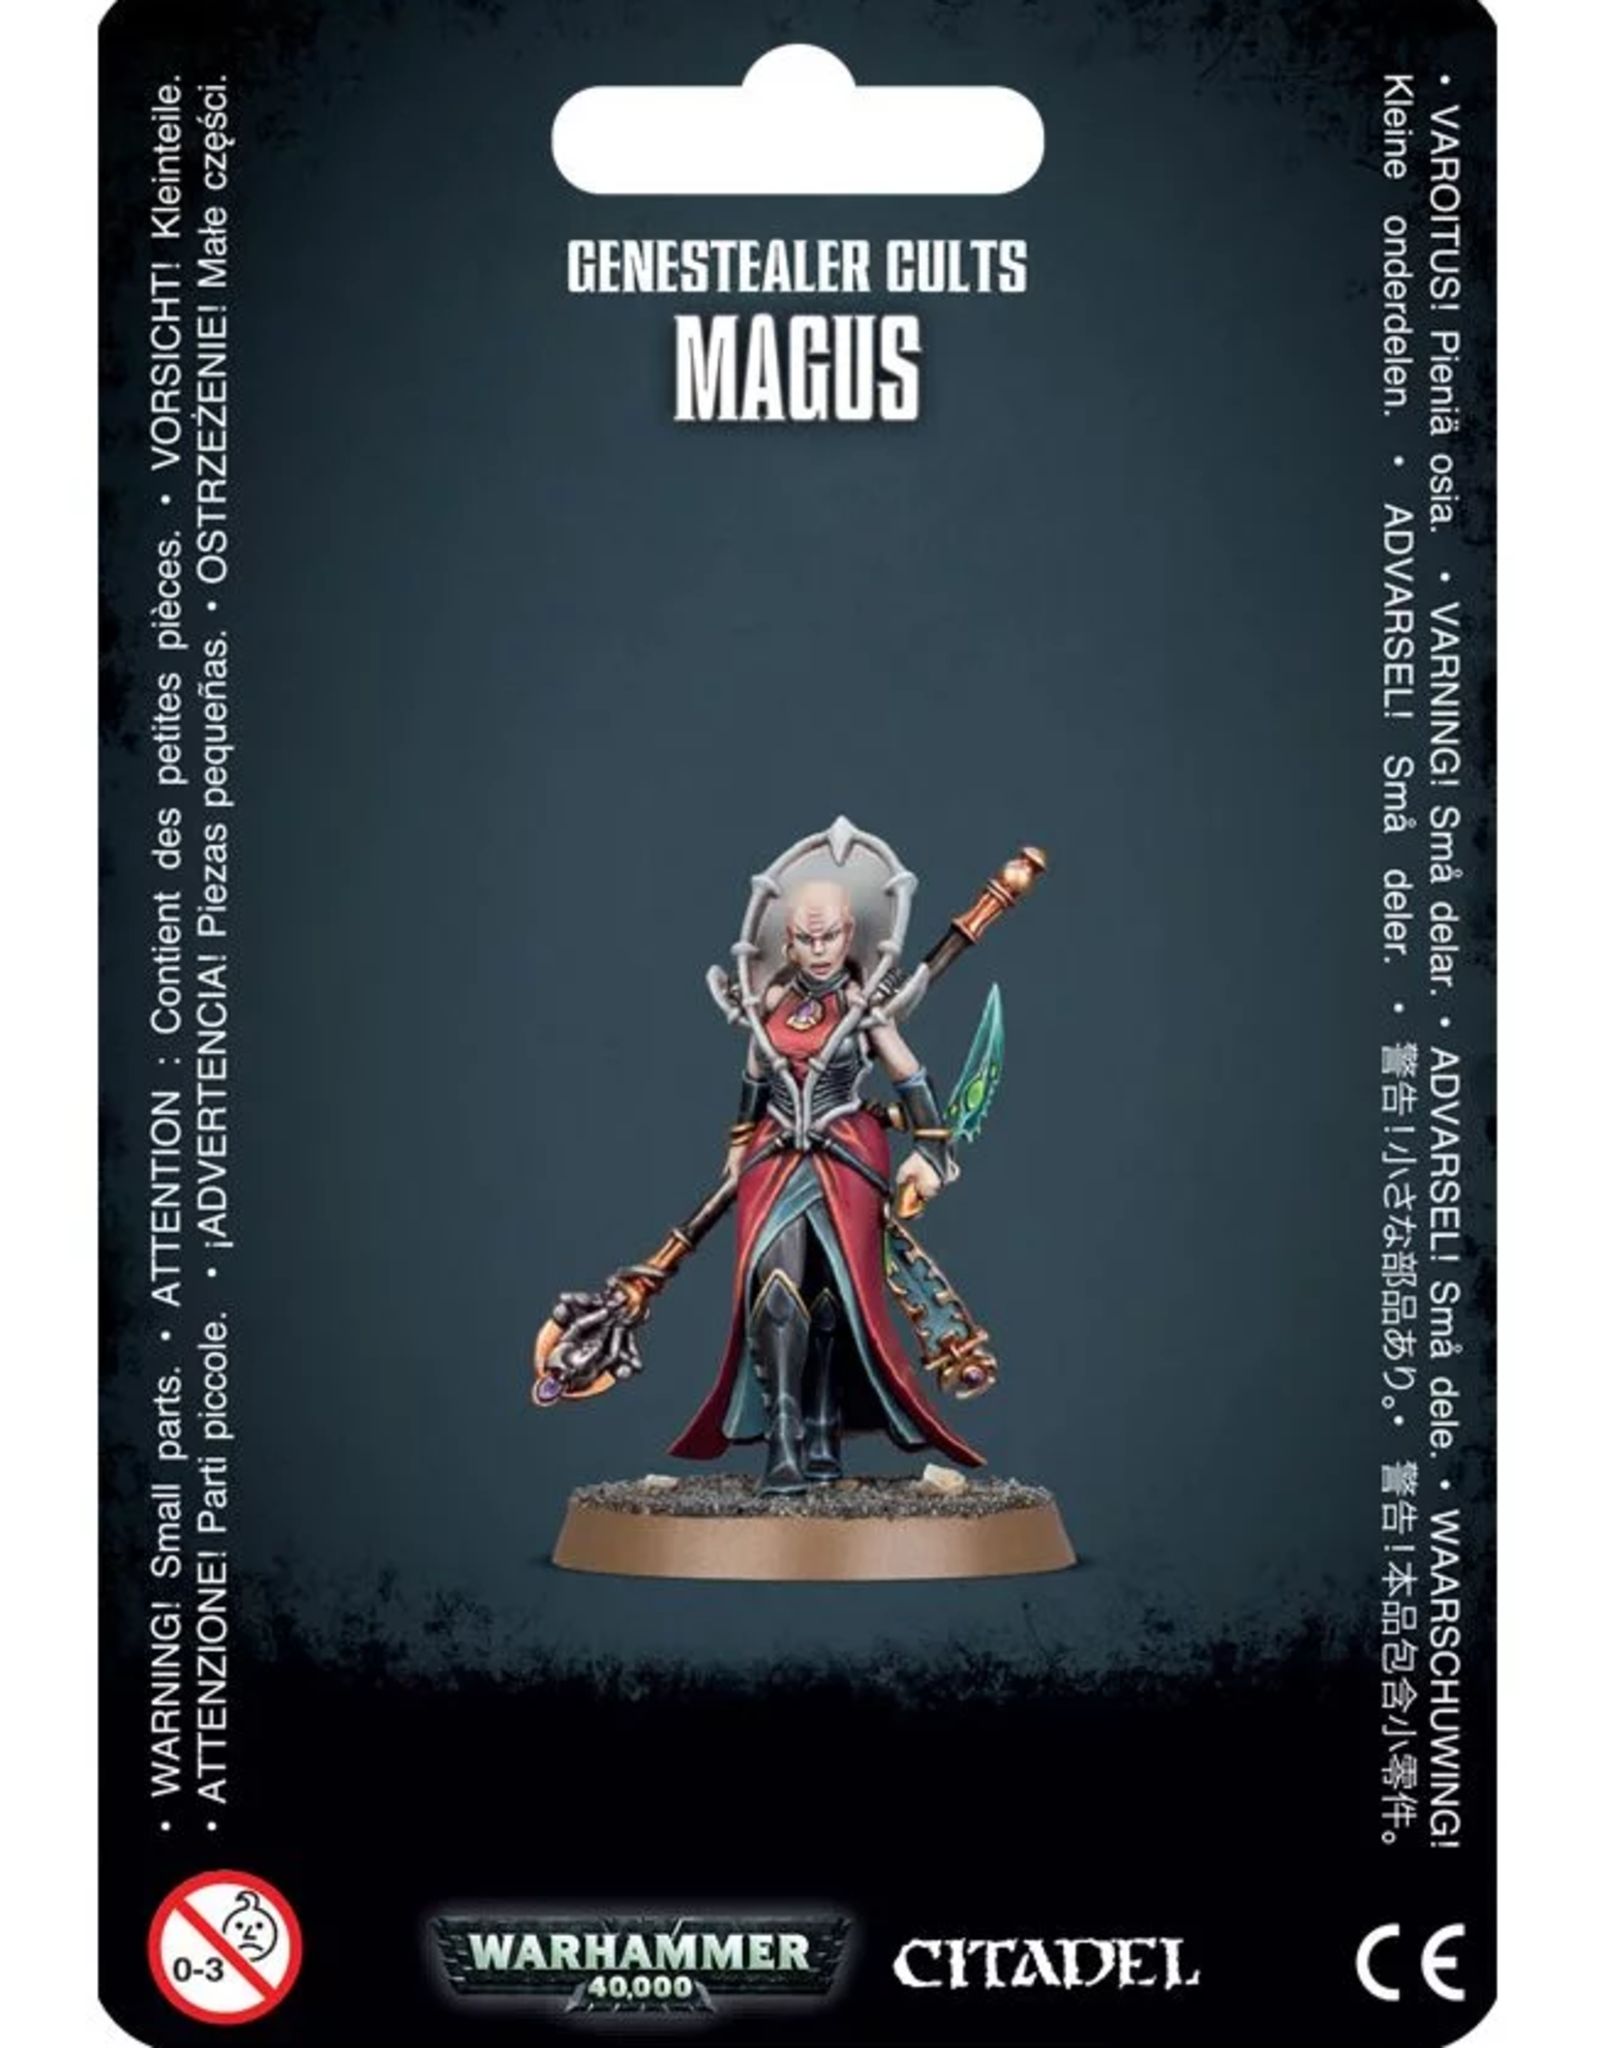 Games Workshop Genestealer Cult: Magus